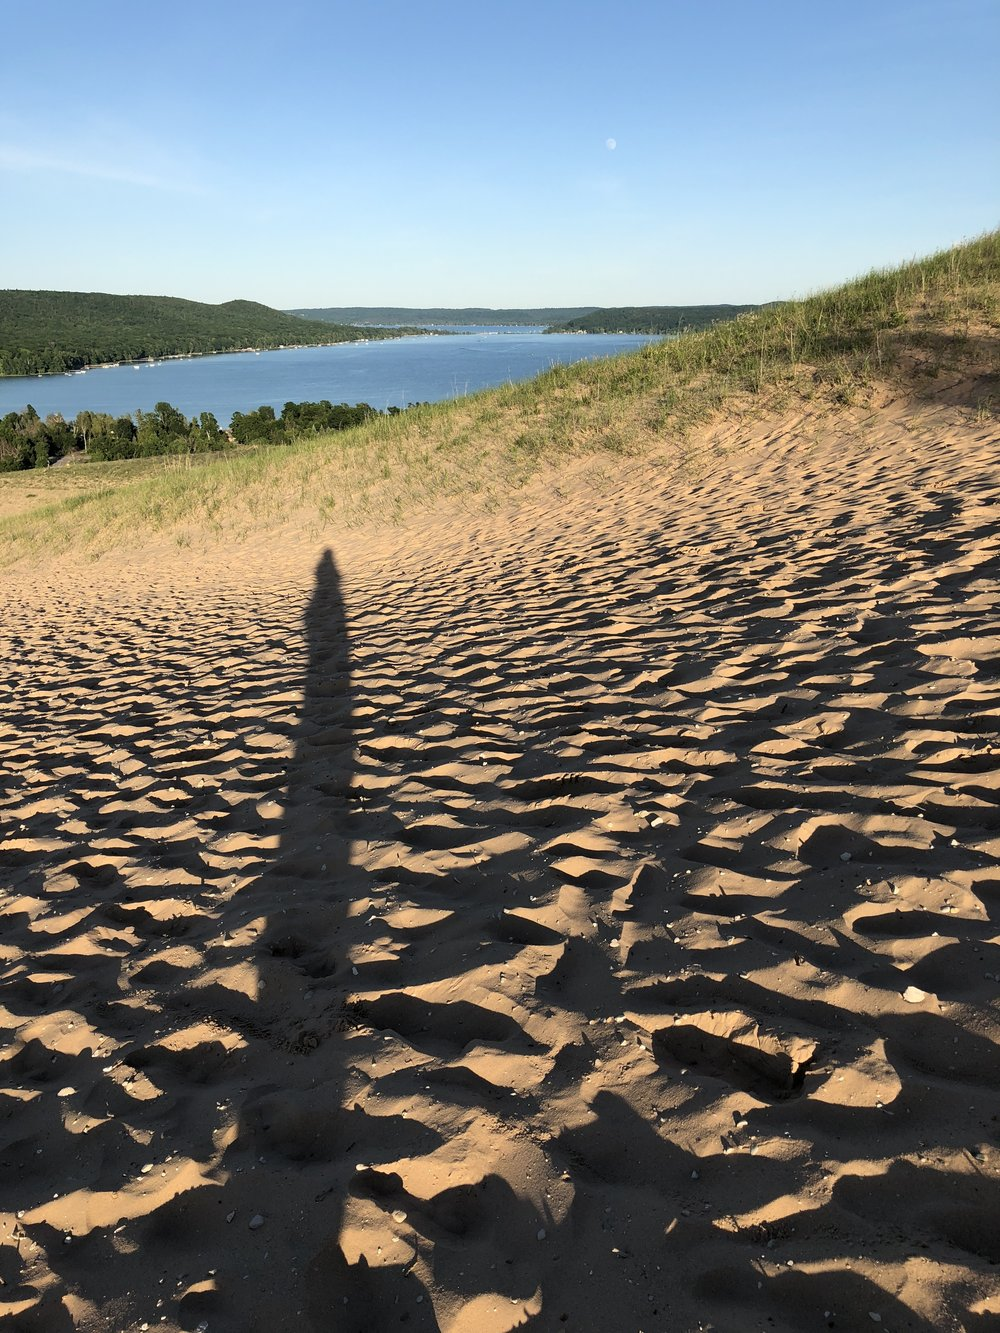 Our first Michigan night was topped with a hike up one of Sleeping Bear Dunes for long shadows and this beautiful view of Glen Lake.